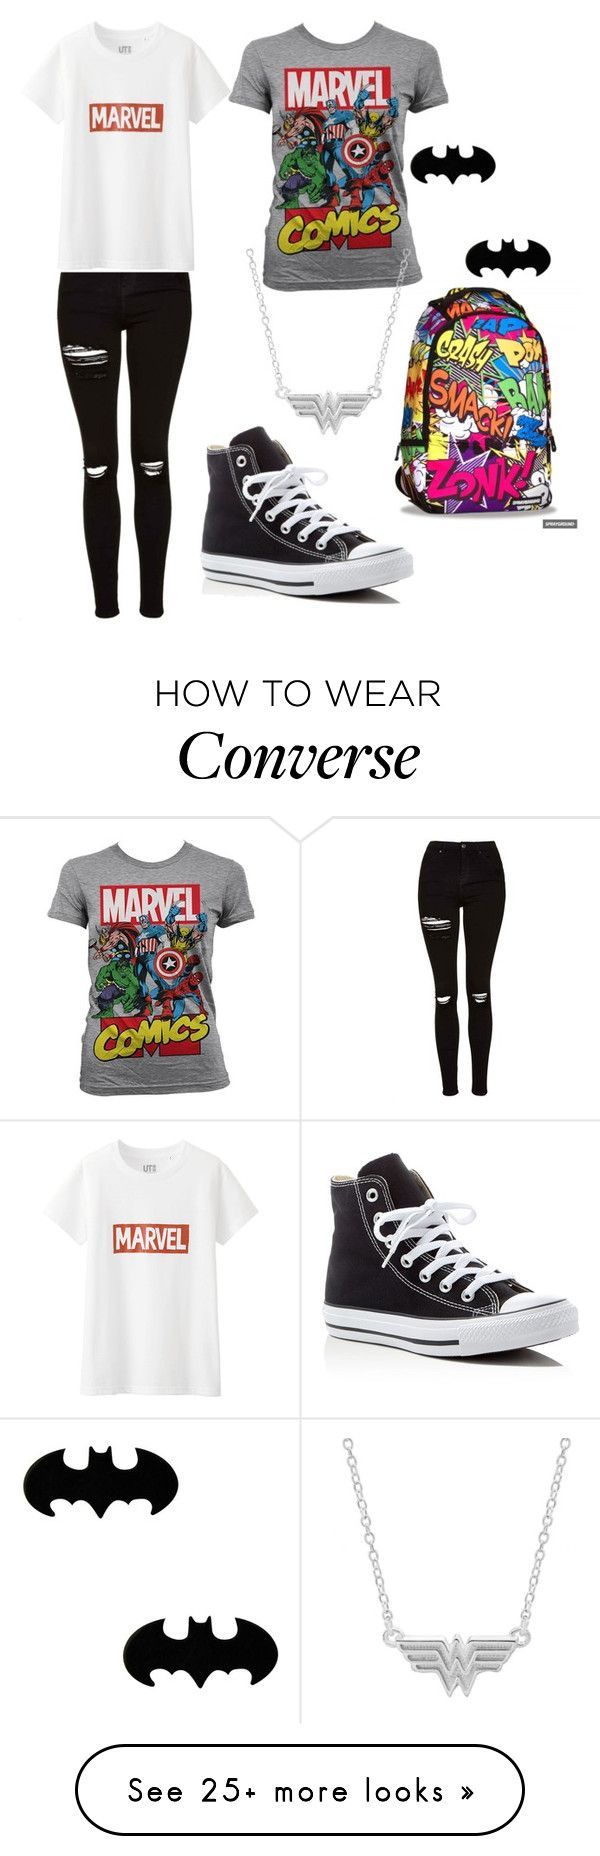 """Comics"" by nyxqueen on Polyvore featuring Topshop, Uniqlo, Marvel Comics and Converse"